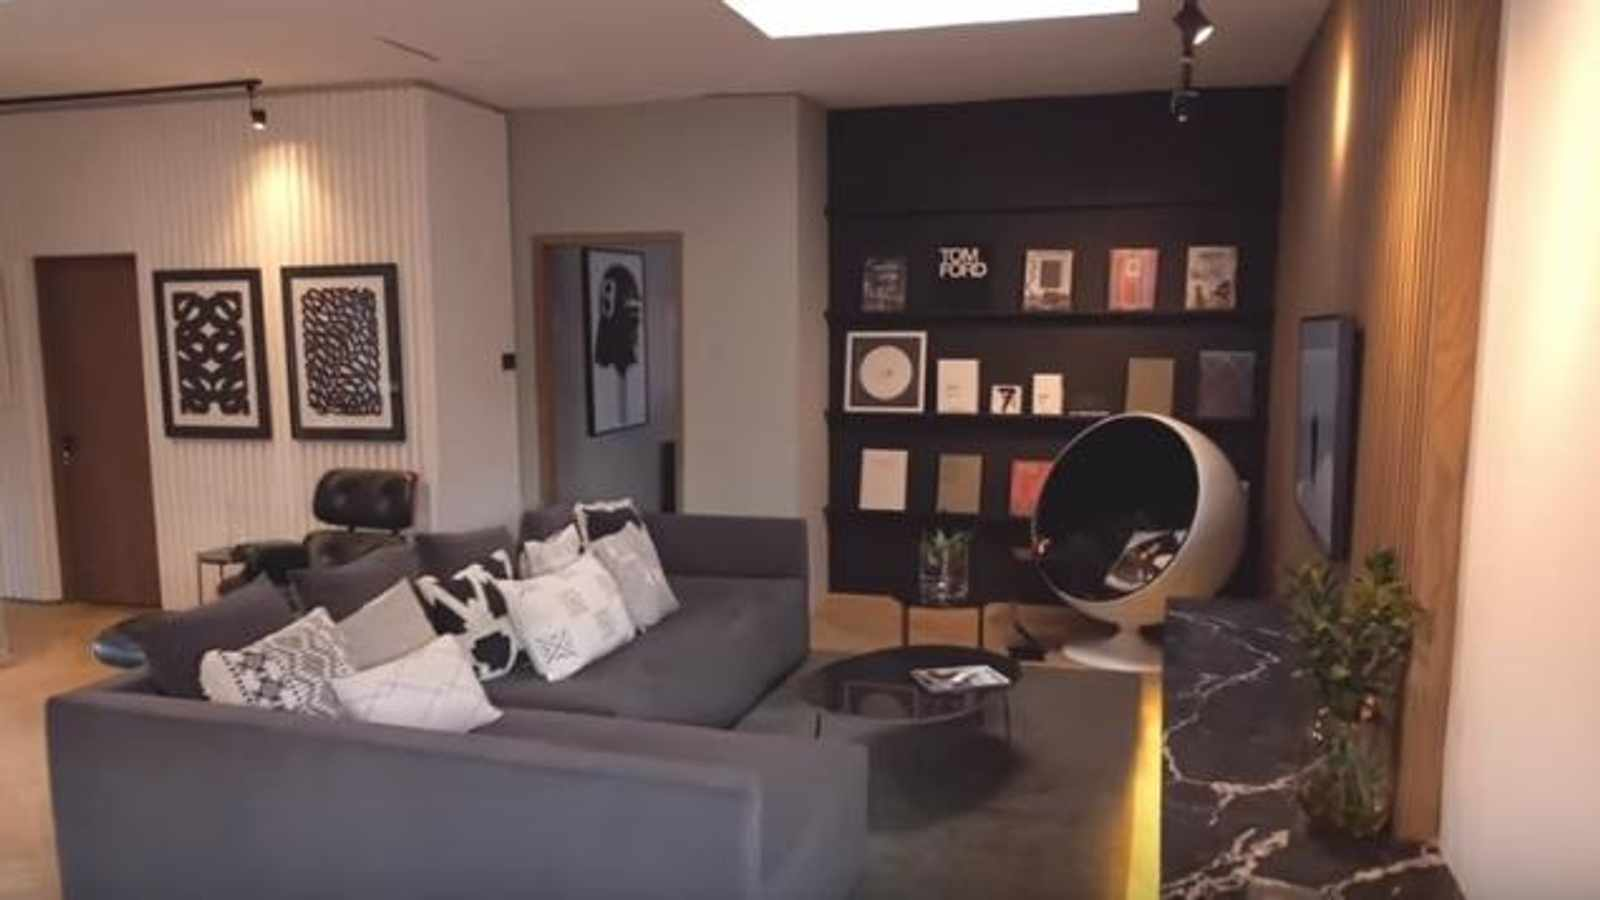 Tristan du Plessis creates a space with the feel of a New York penthouse